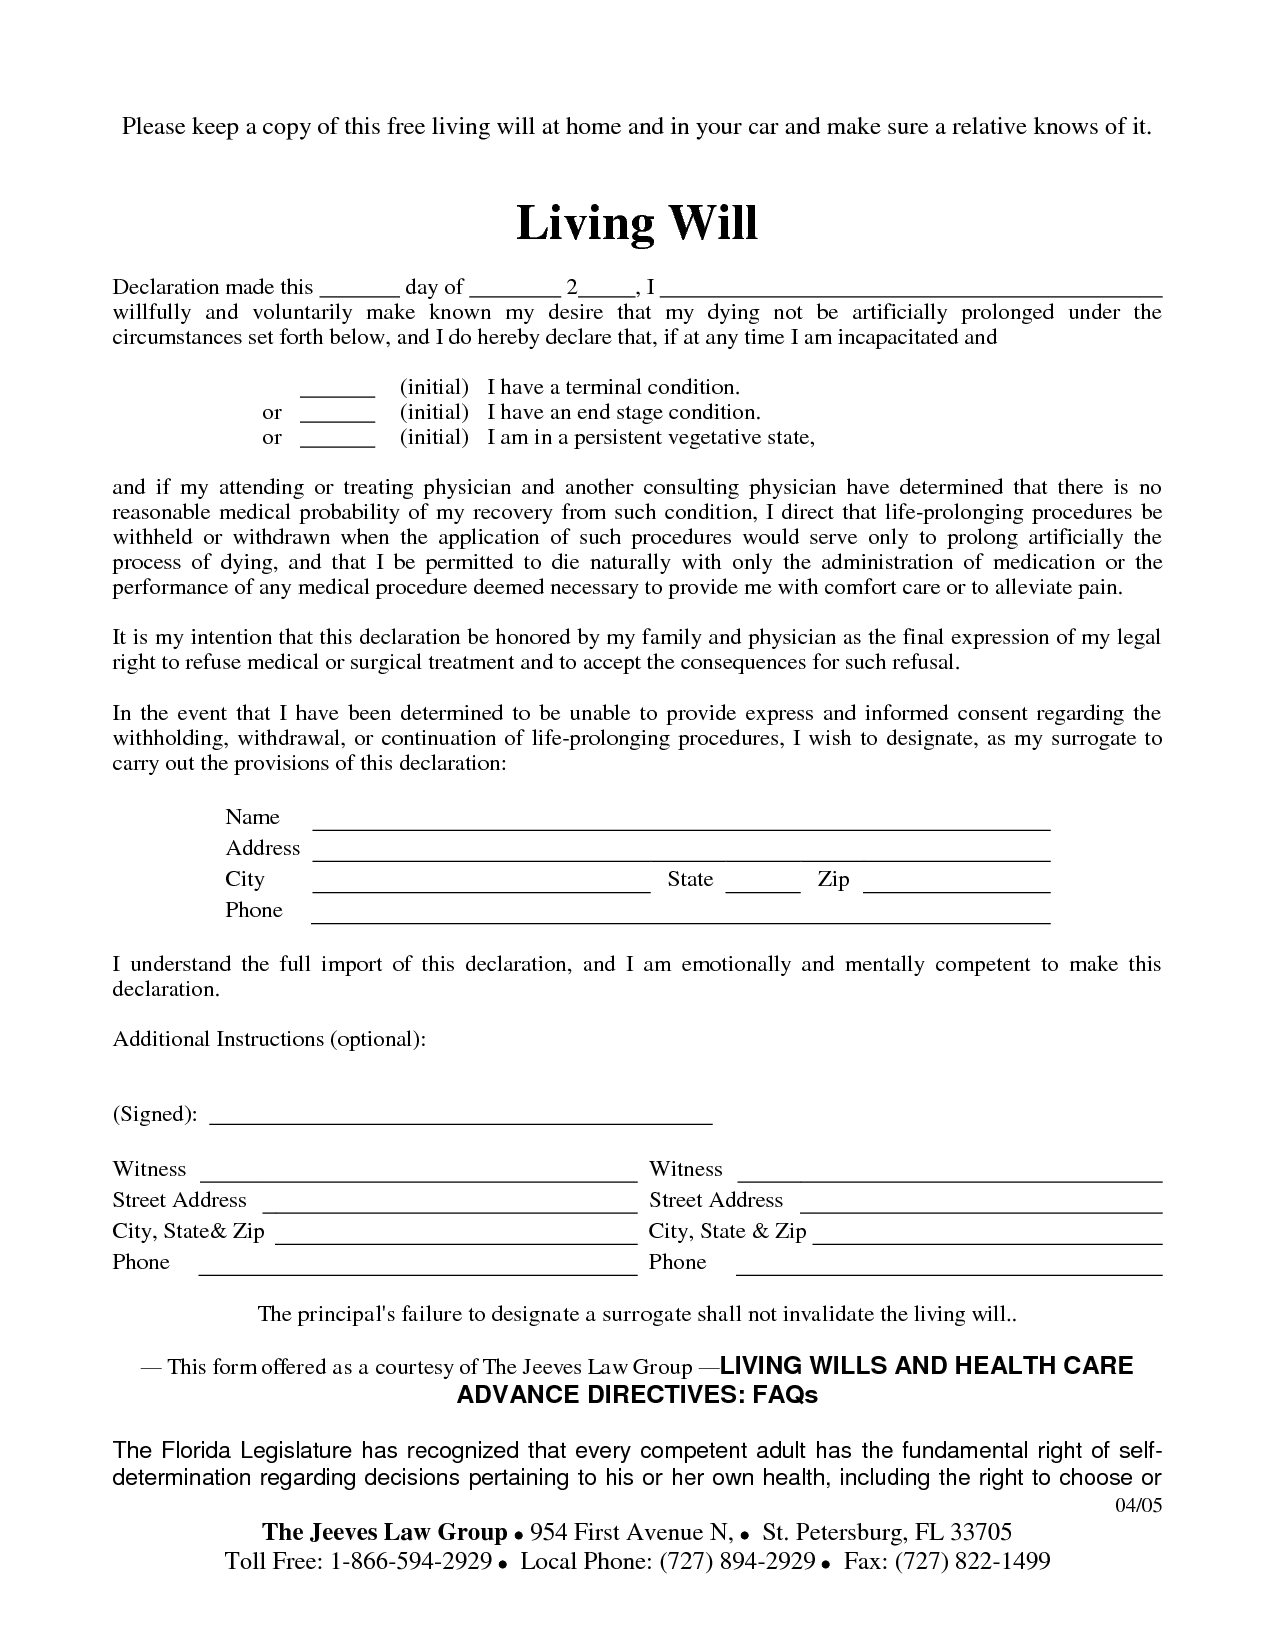 Free Printable Living Will Form Louisiana - 7.11.hus-Noorderpad.de • - Free Printable Living Will